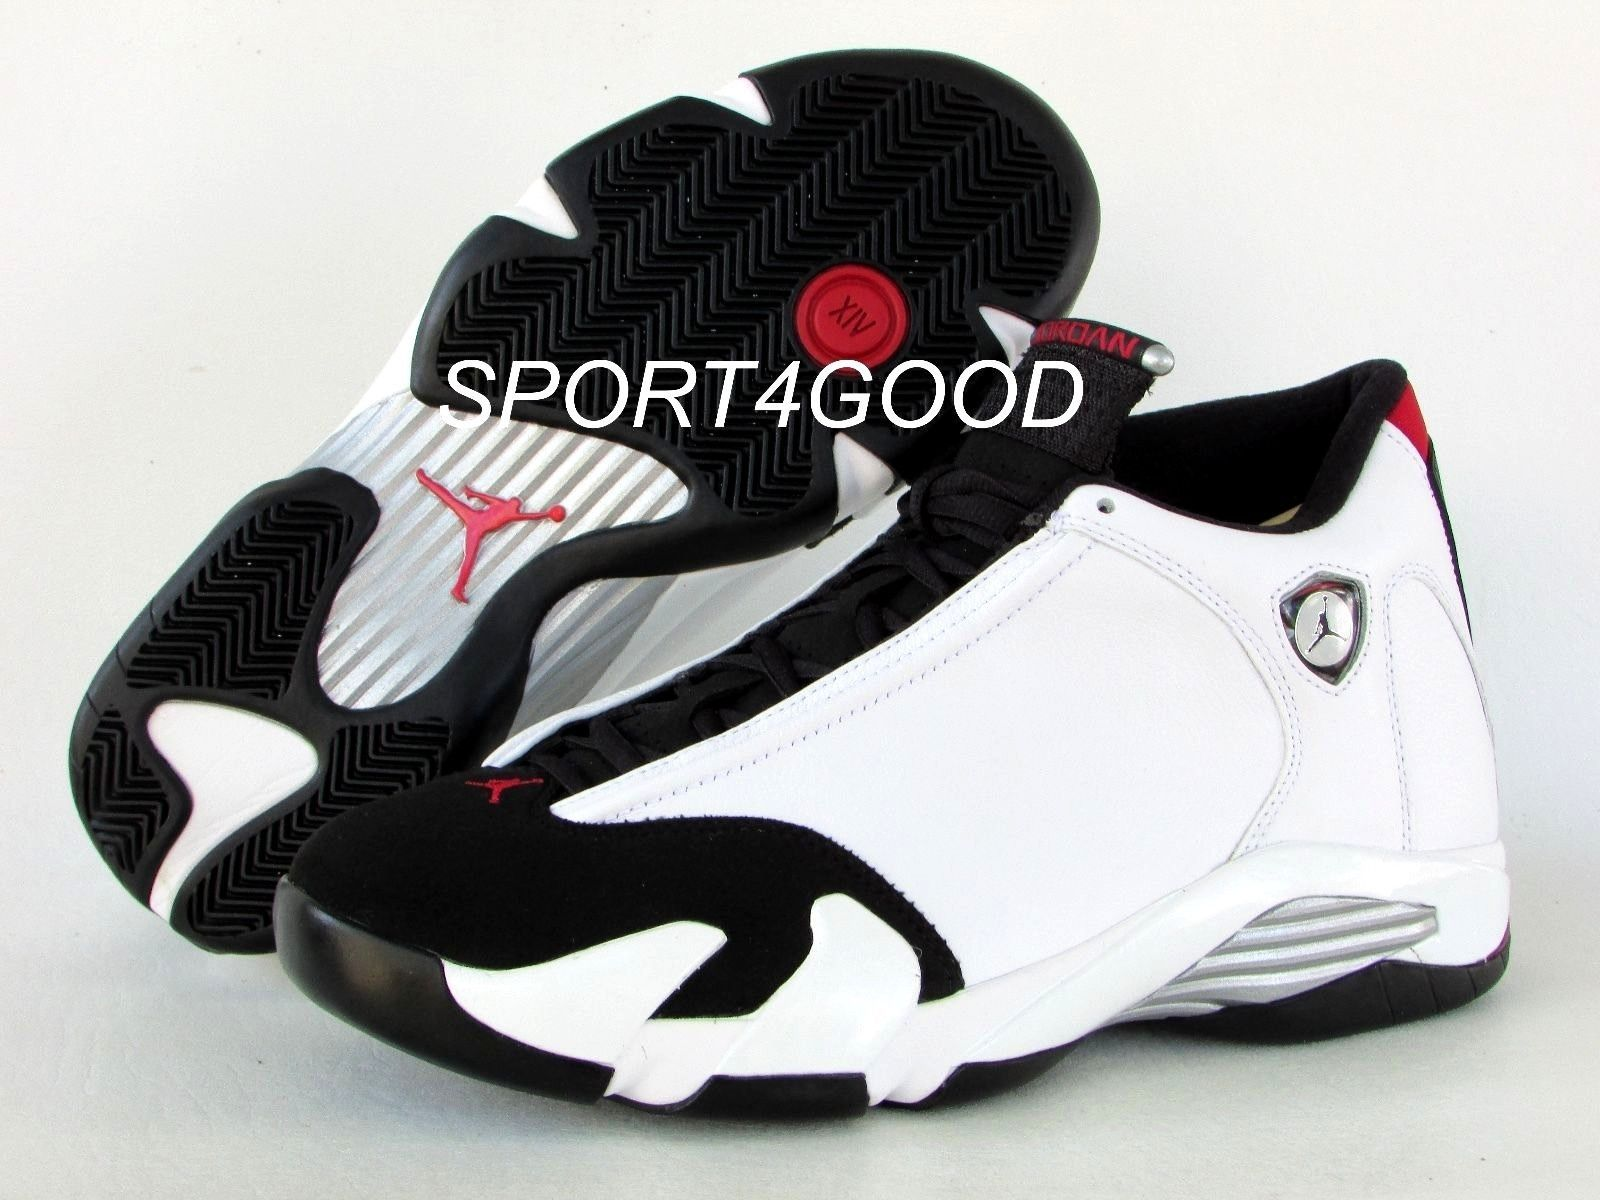 96376d7eee34c1 Nike Air Jordan 14 XIV Retro White Black Toe Men SZ 8.5  487471-102 ...